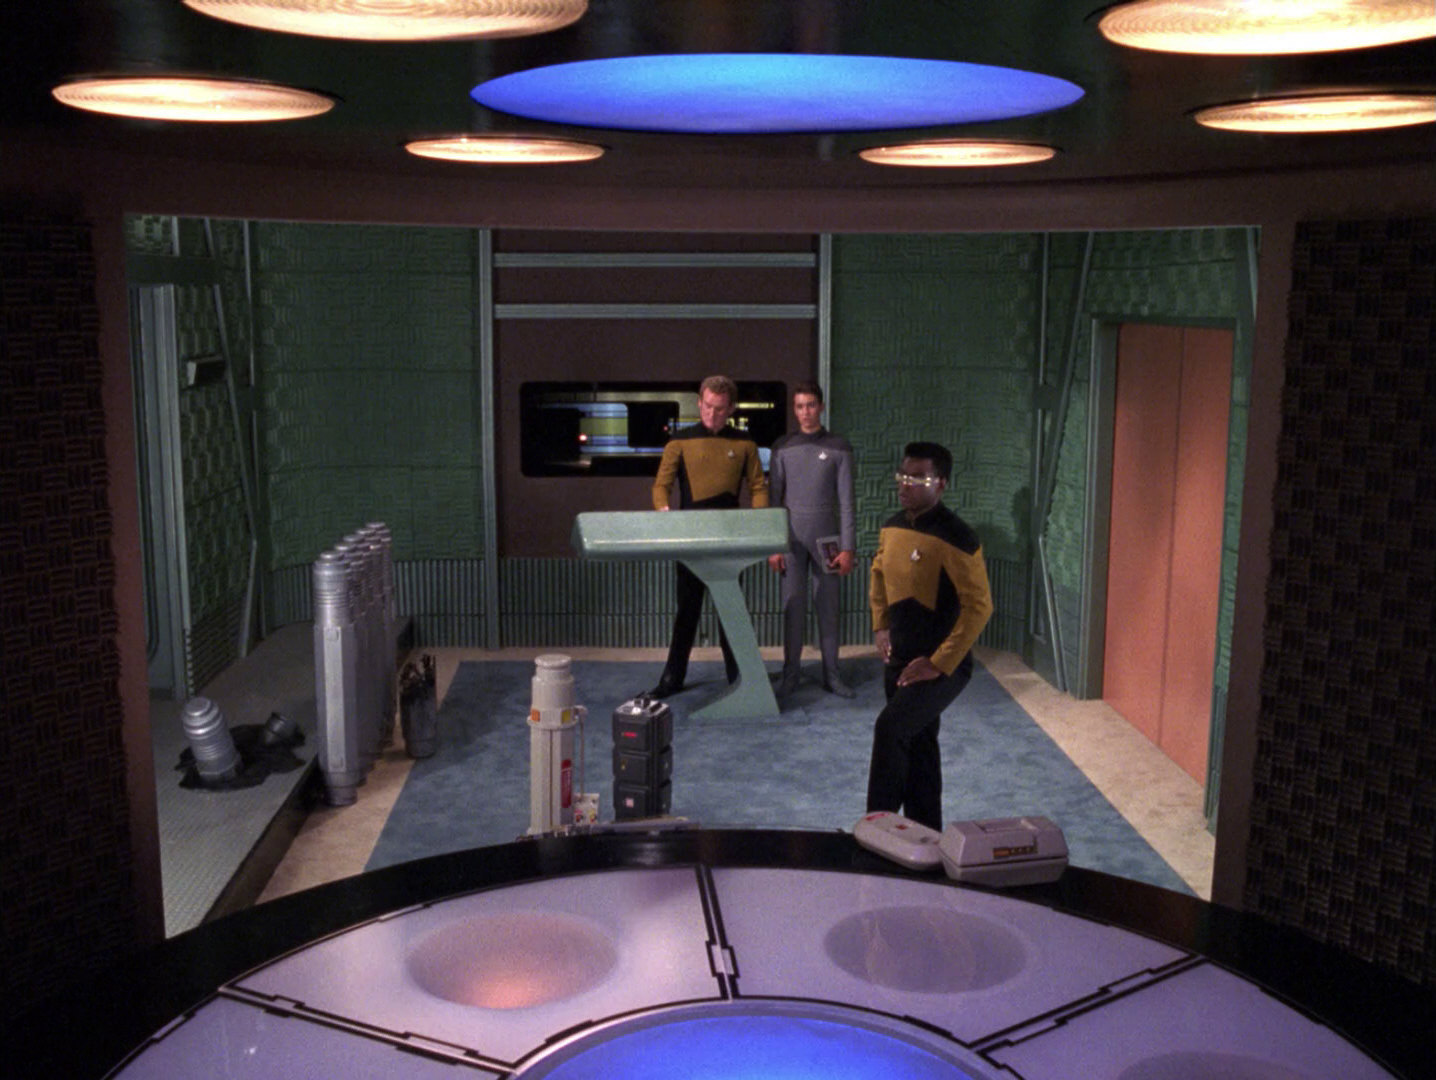 Ex Astris Scientia Acoustic Panels As Wall Coverings In Tng